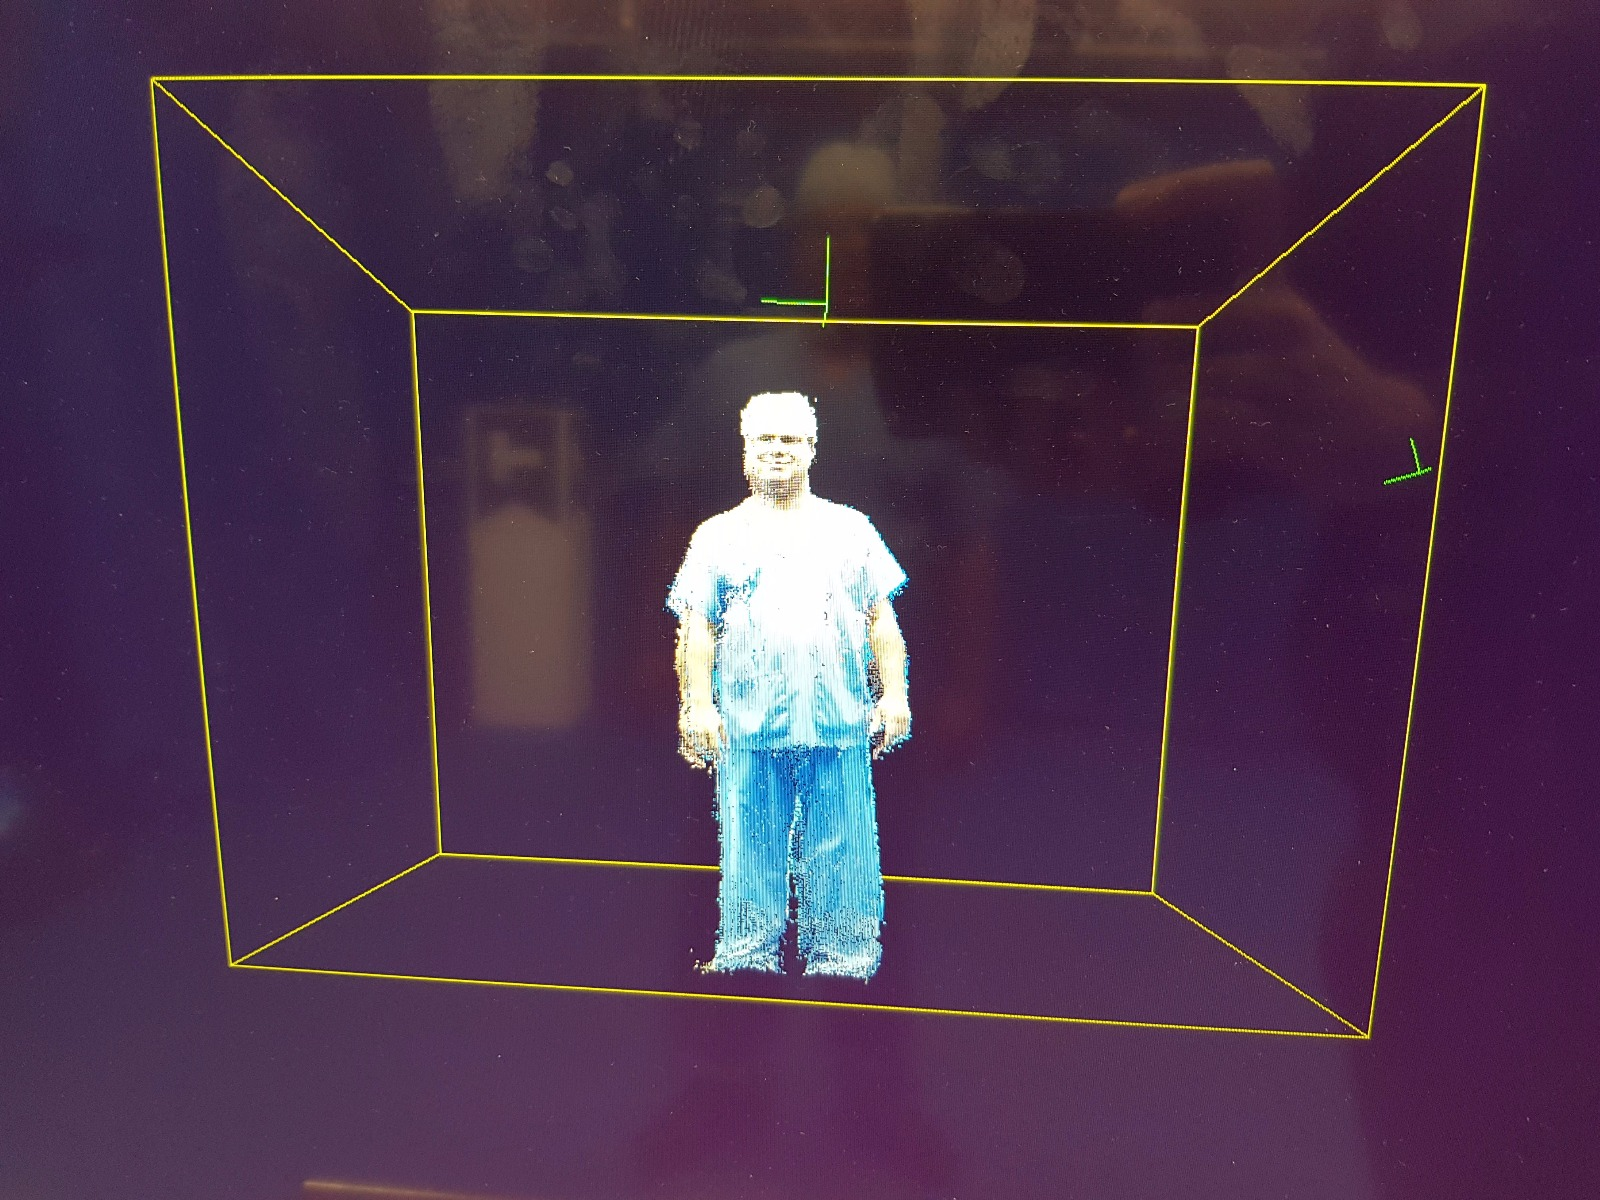 Shafi's holographic image during his trial with virtual teleportation